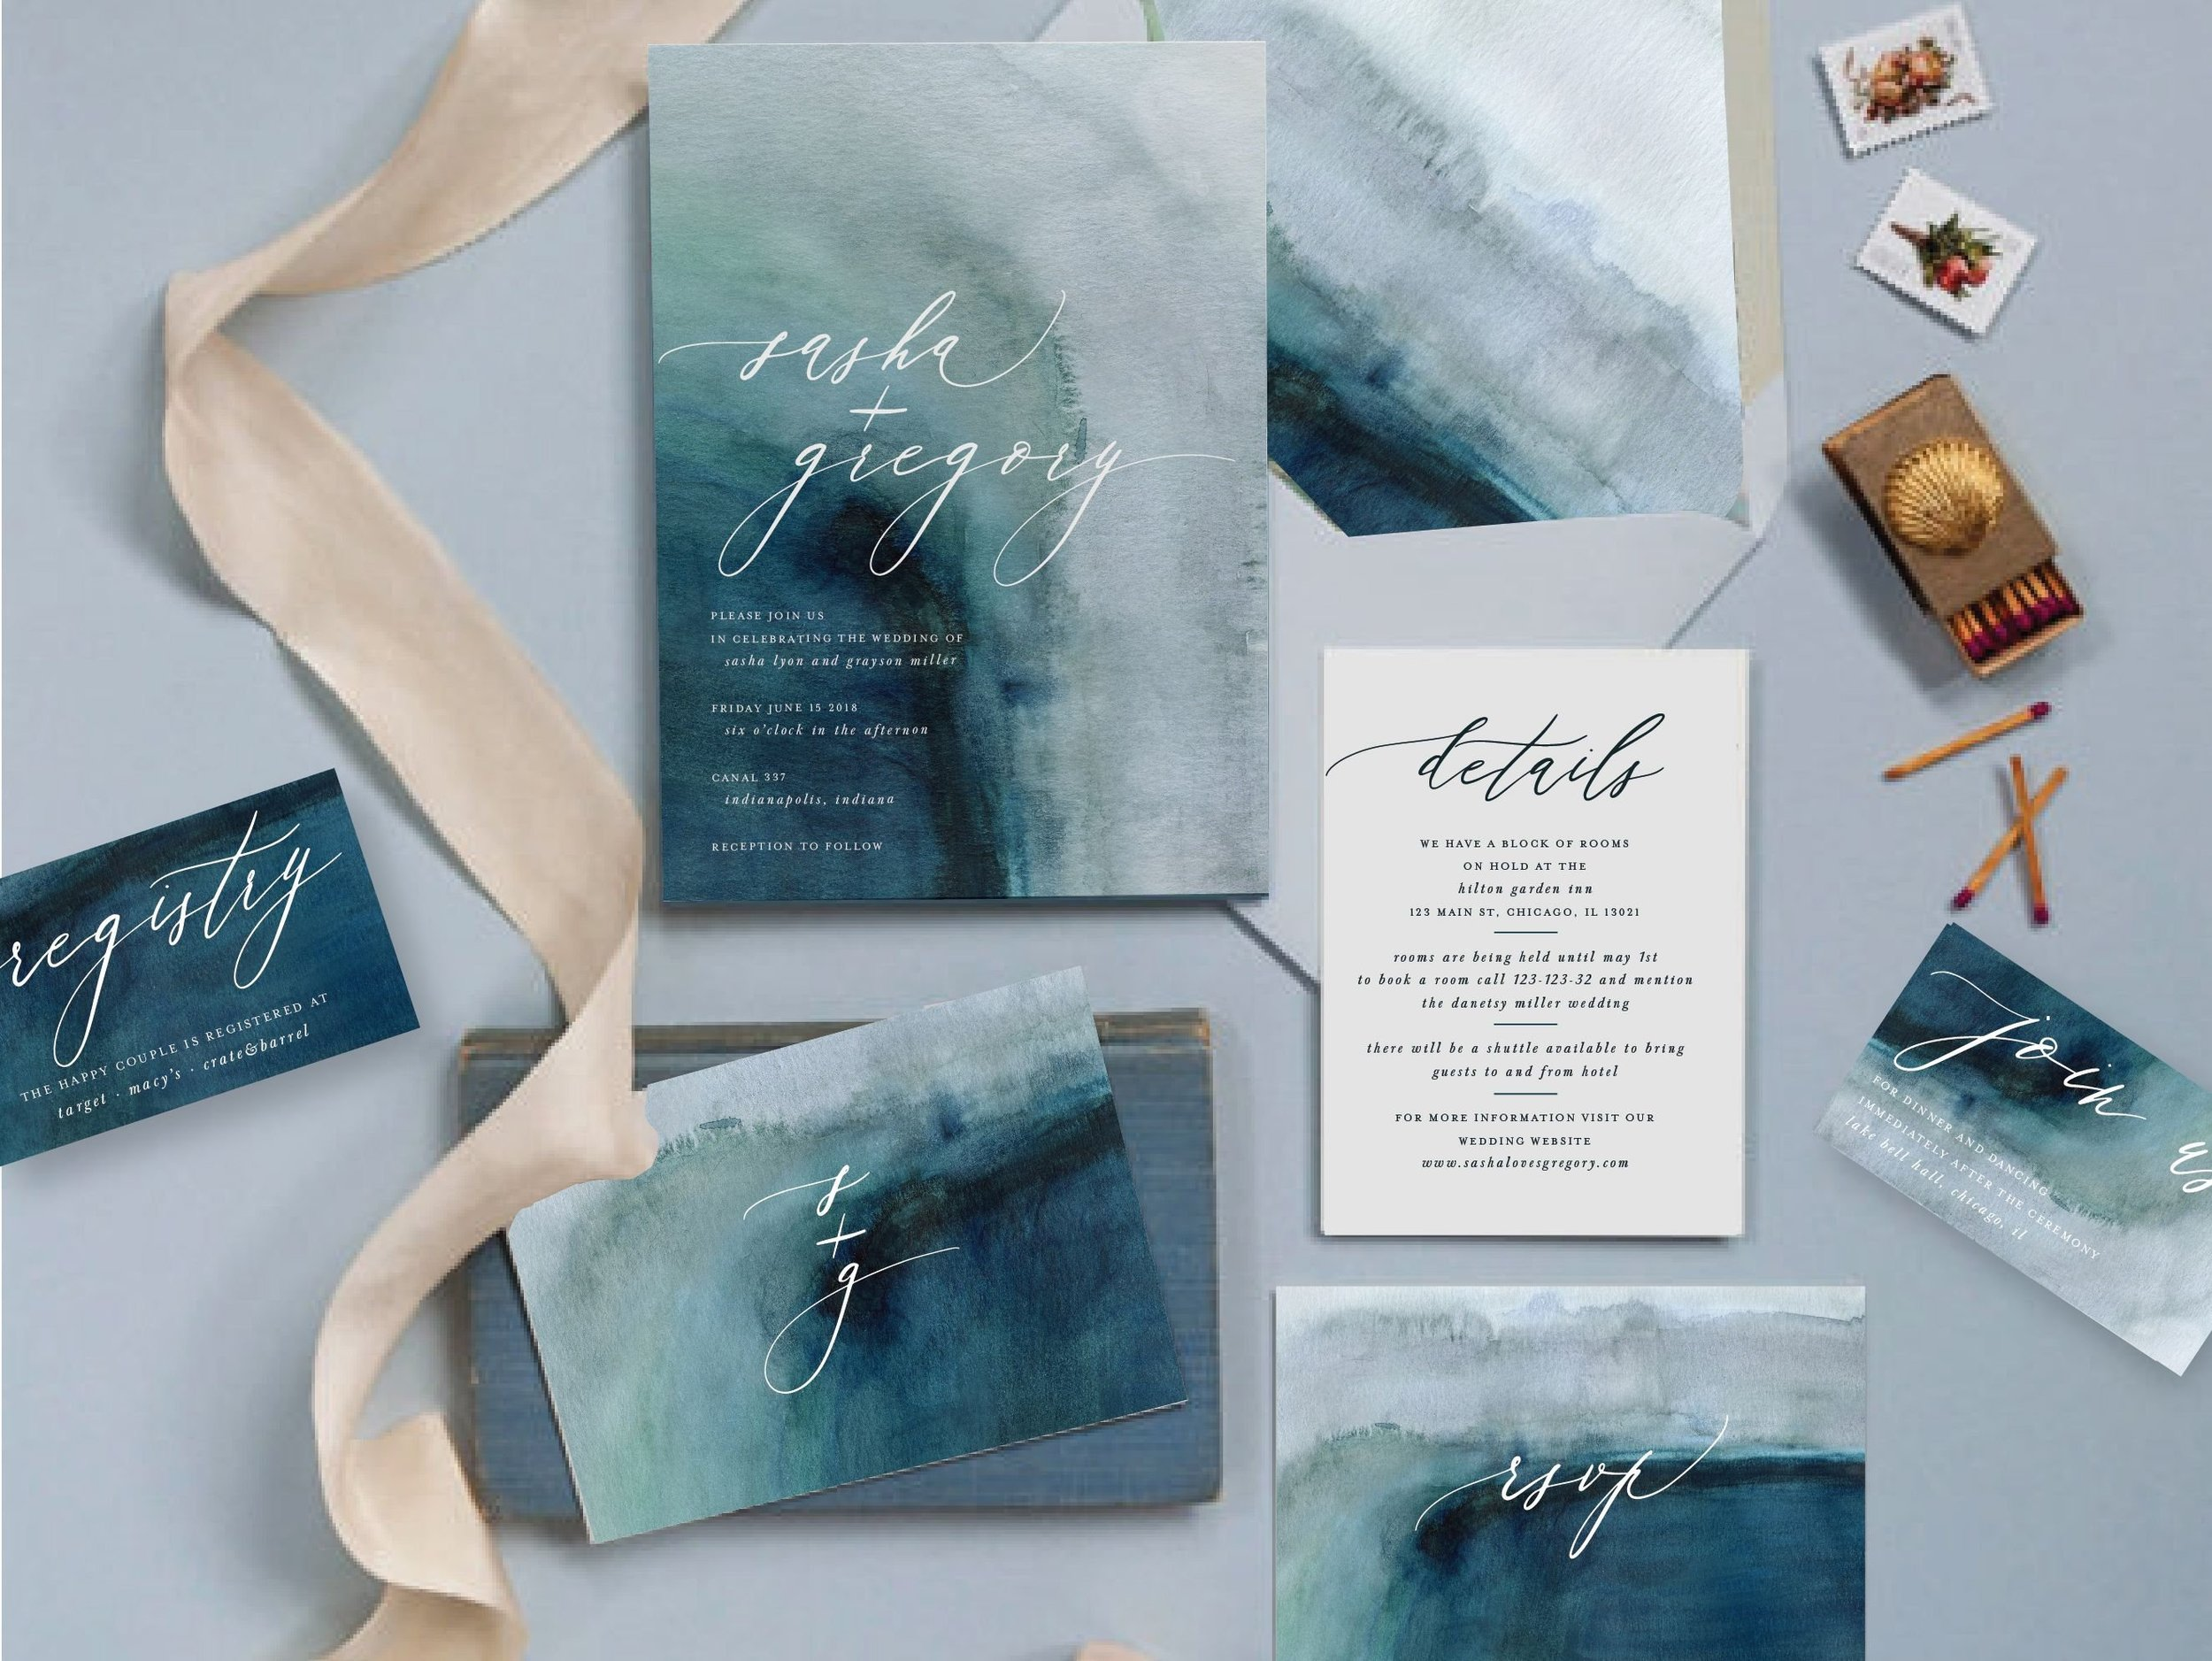 Spring Watercolor Wedding Invitations - The Overwhelmed Bride Wedding Blog